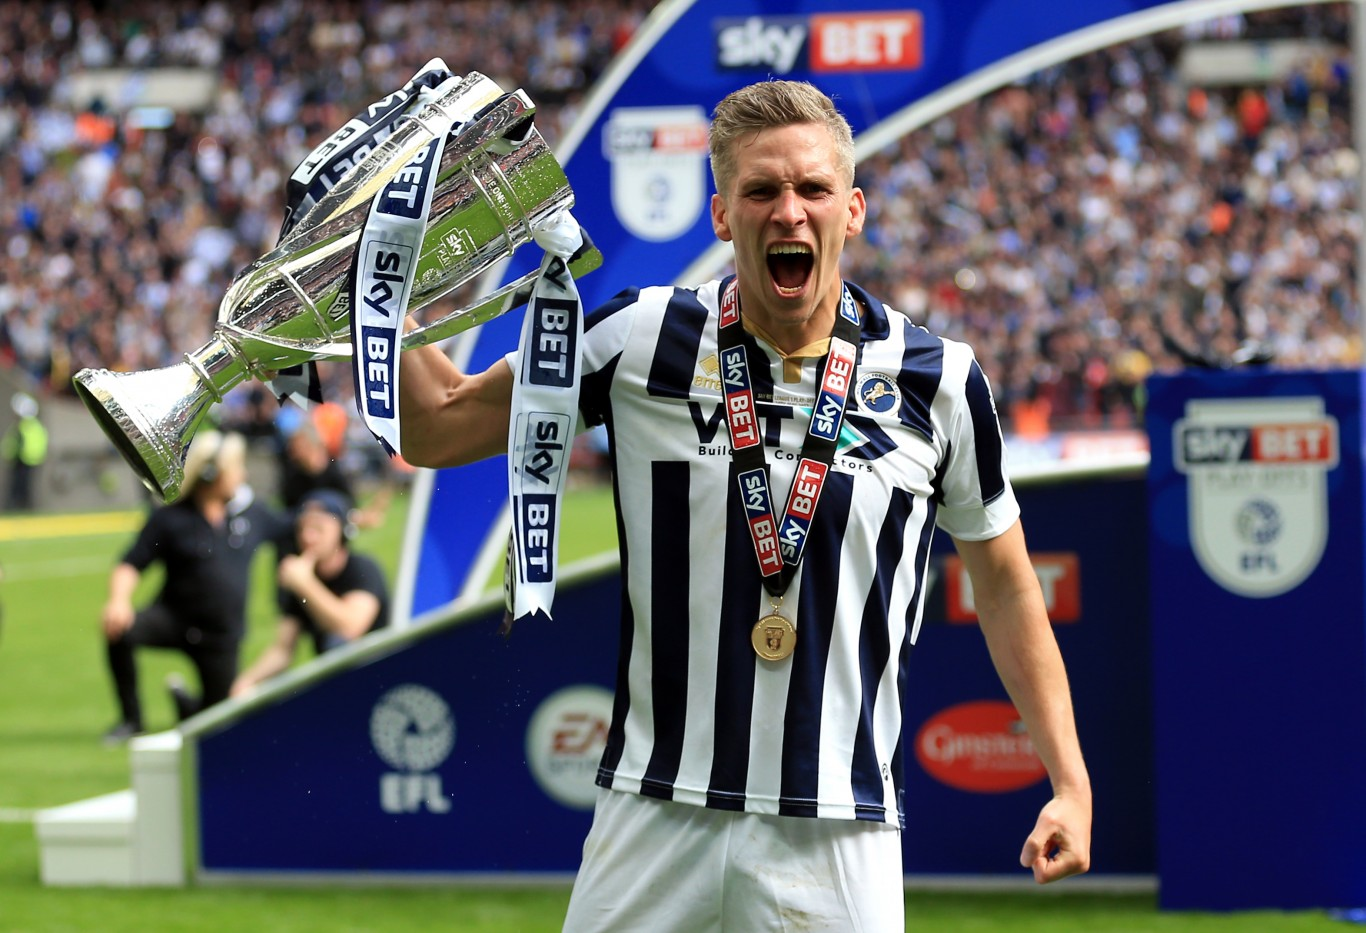 Morison later celebrated with the trophy (Nigel French/PA)